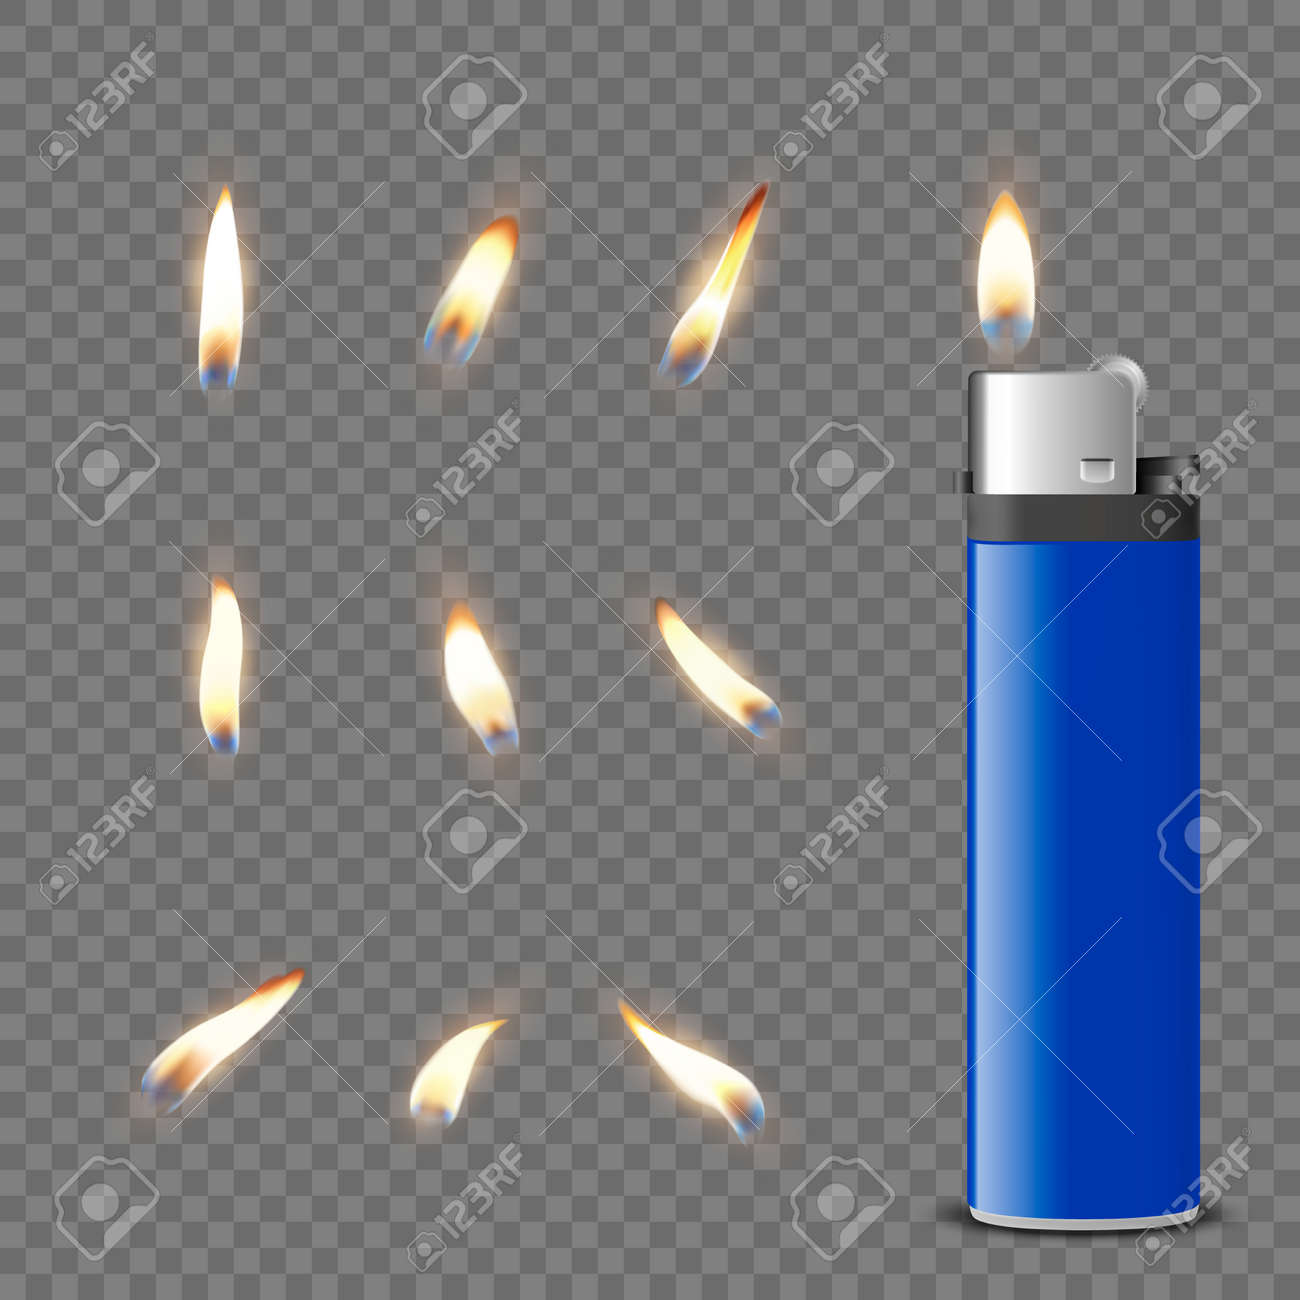 Vector 3d Realistic Blank Blue Gasoline Lighter and Burning Flame Icon Set Closeup Isolated. Fire from a Lighter. Design Template of Lighter Flame. Front View - 173431479